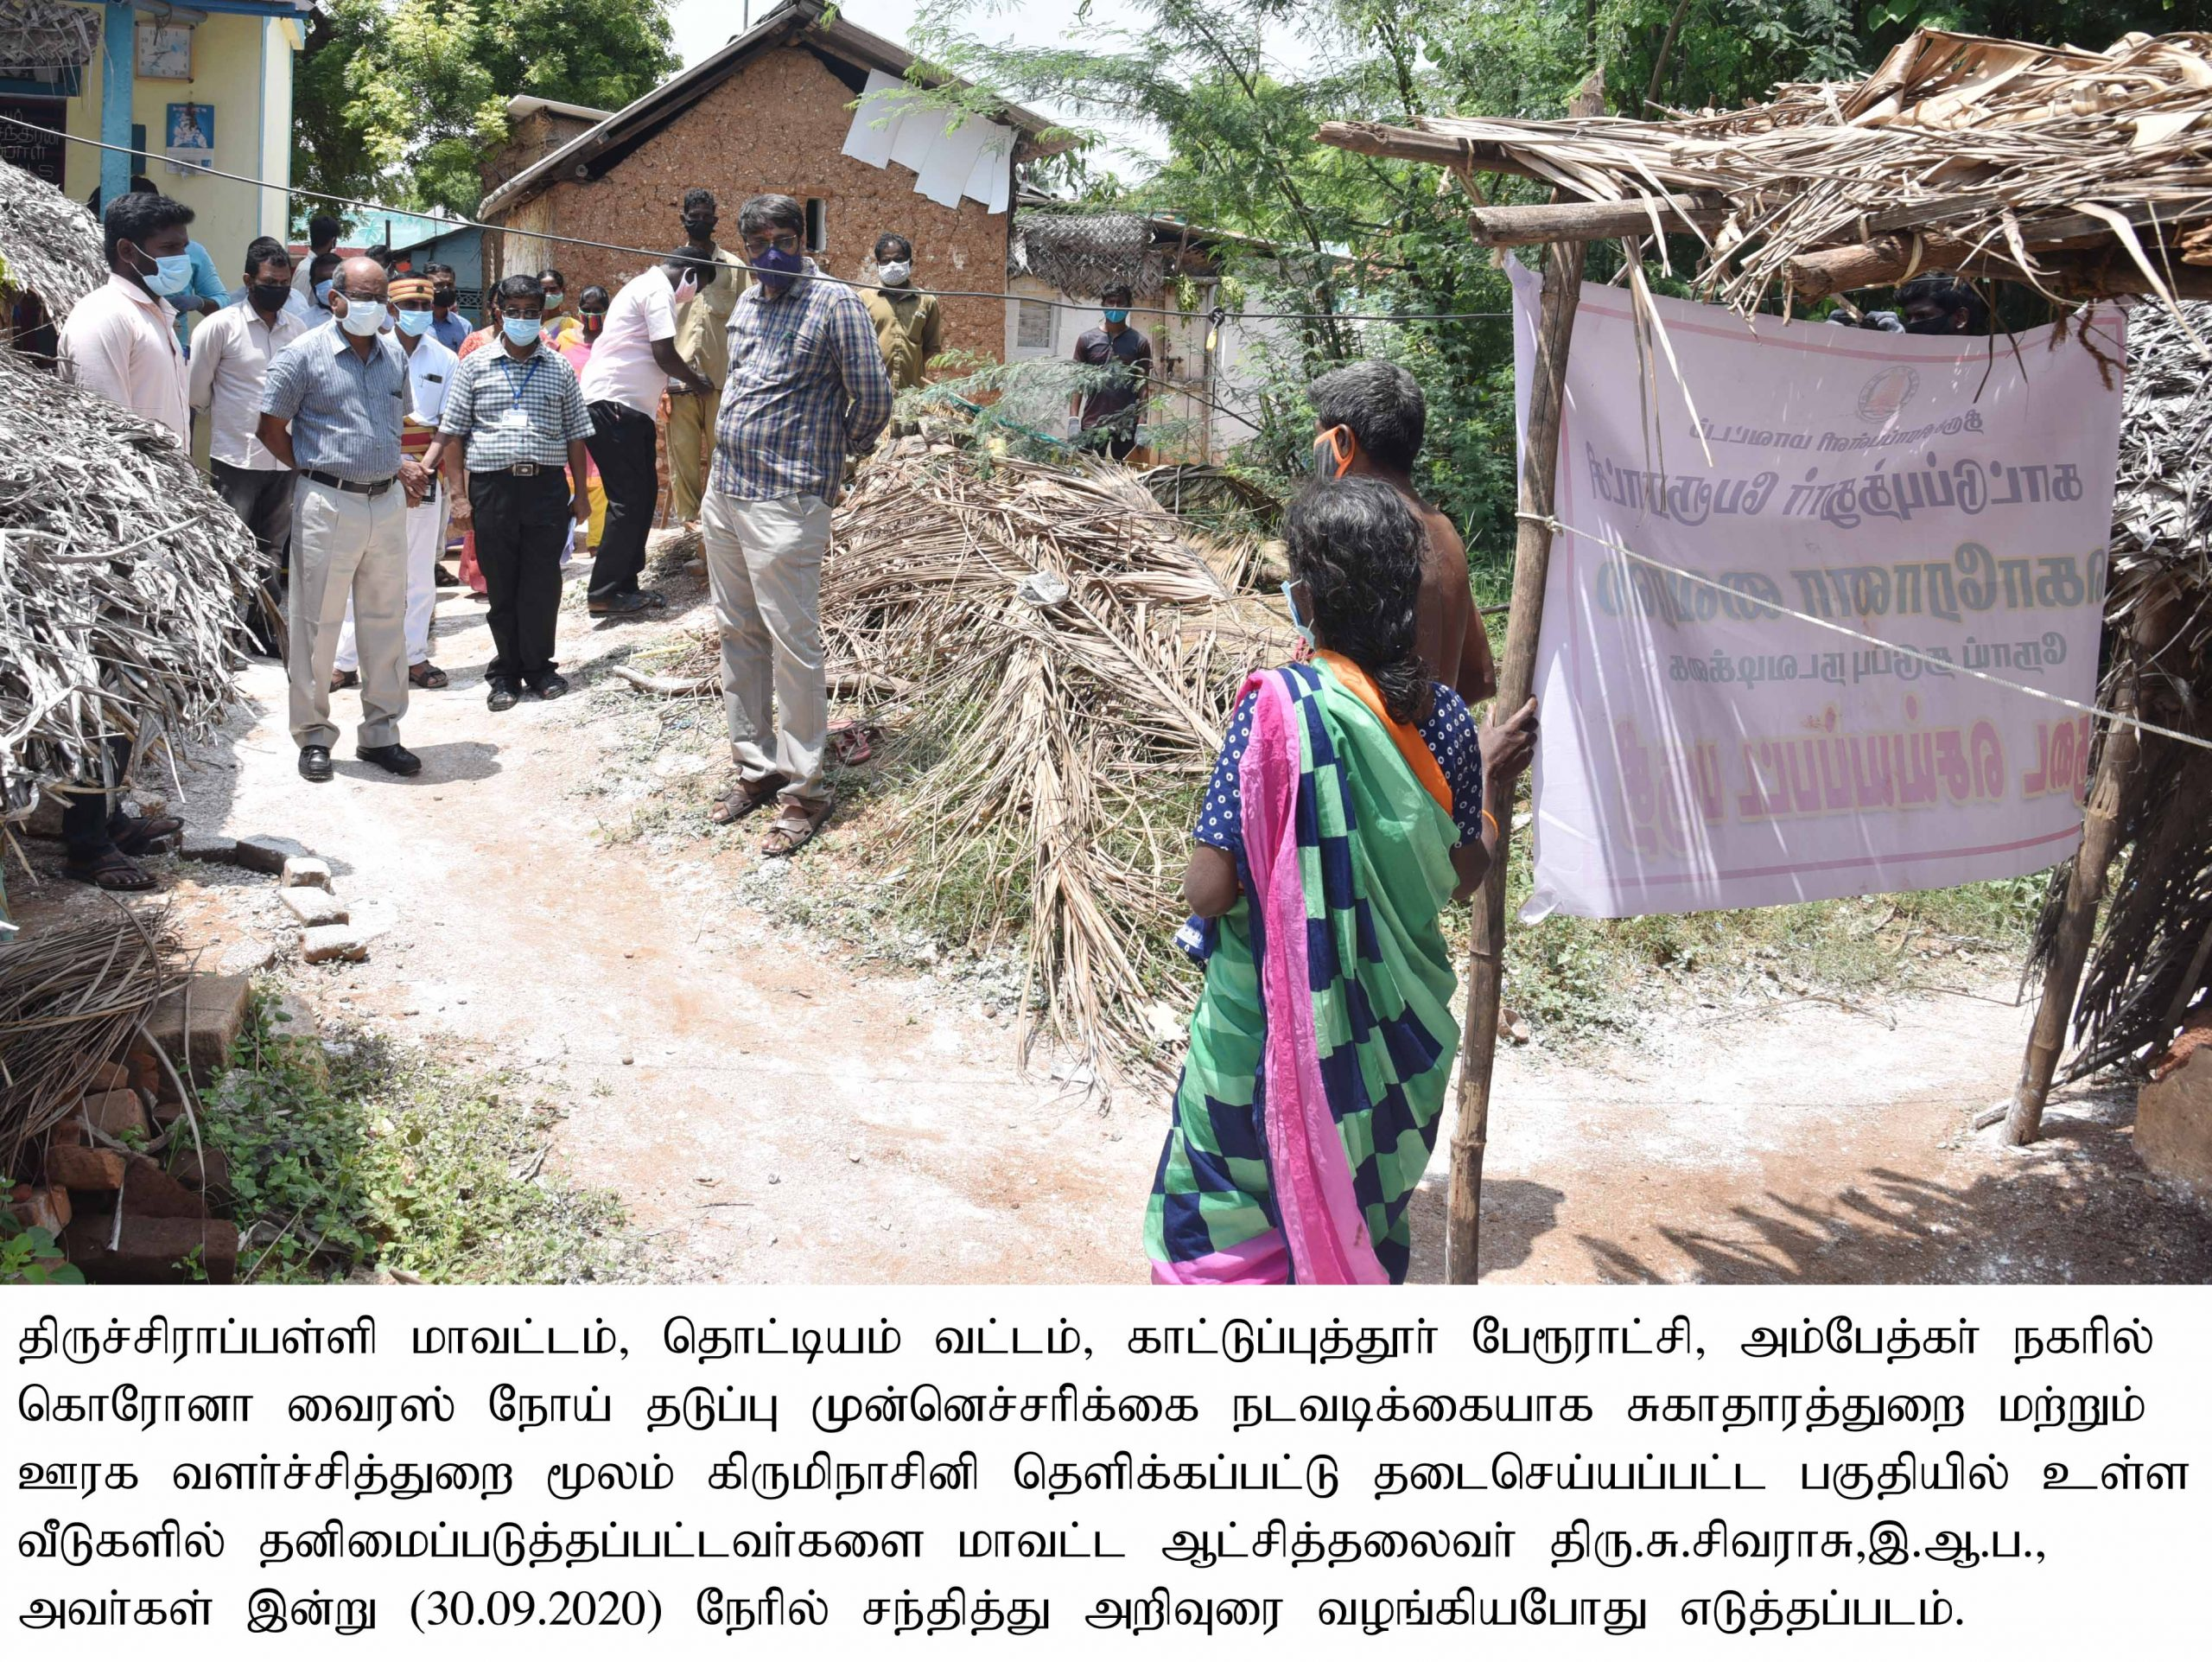 District Collector Inspected the Containment areas in Thottiyam Taluks on 30-09-2020